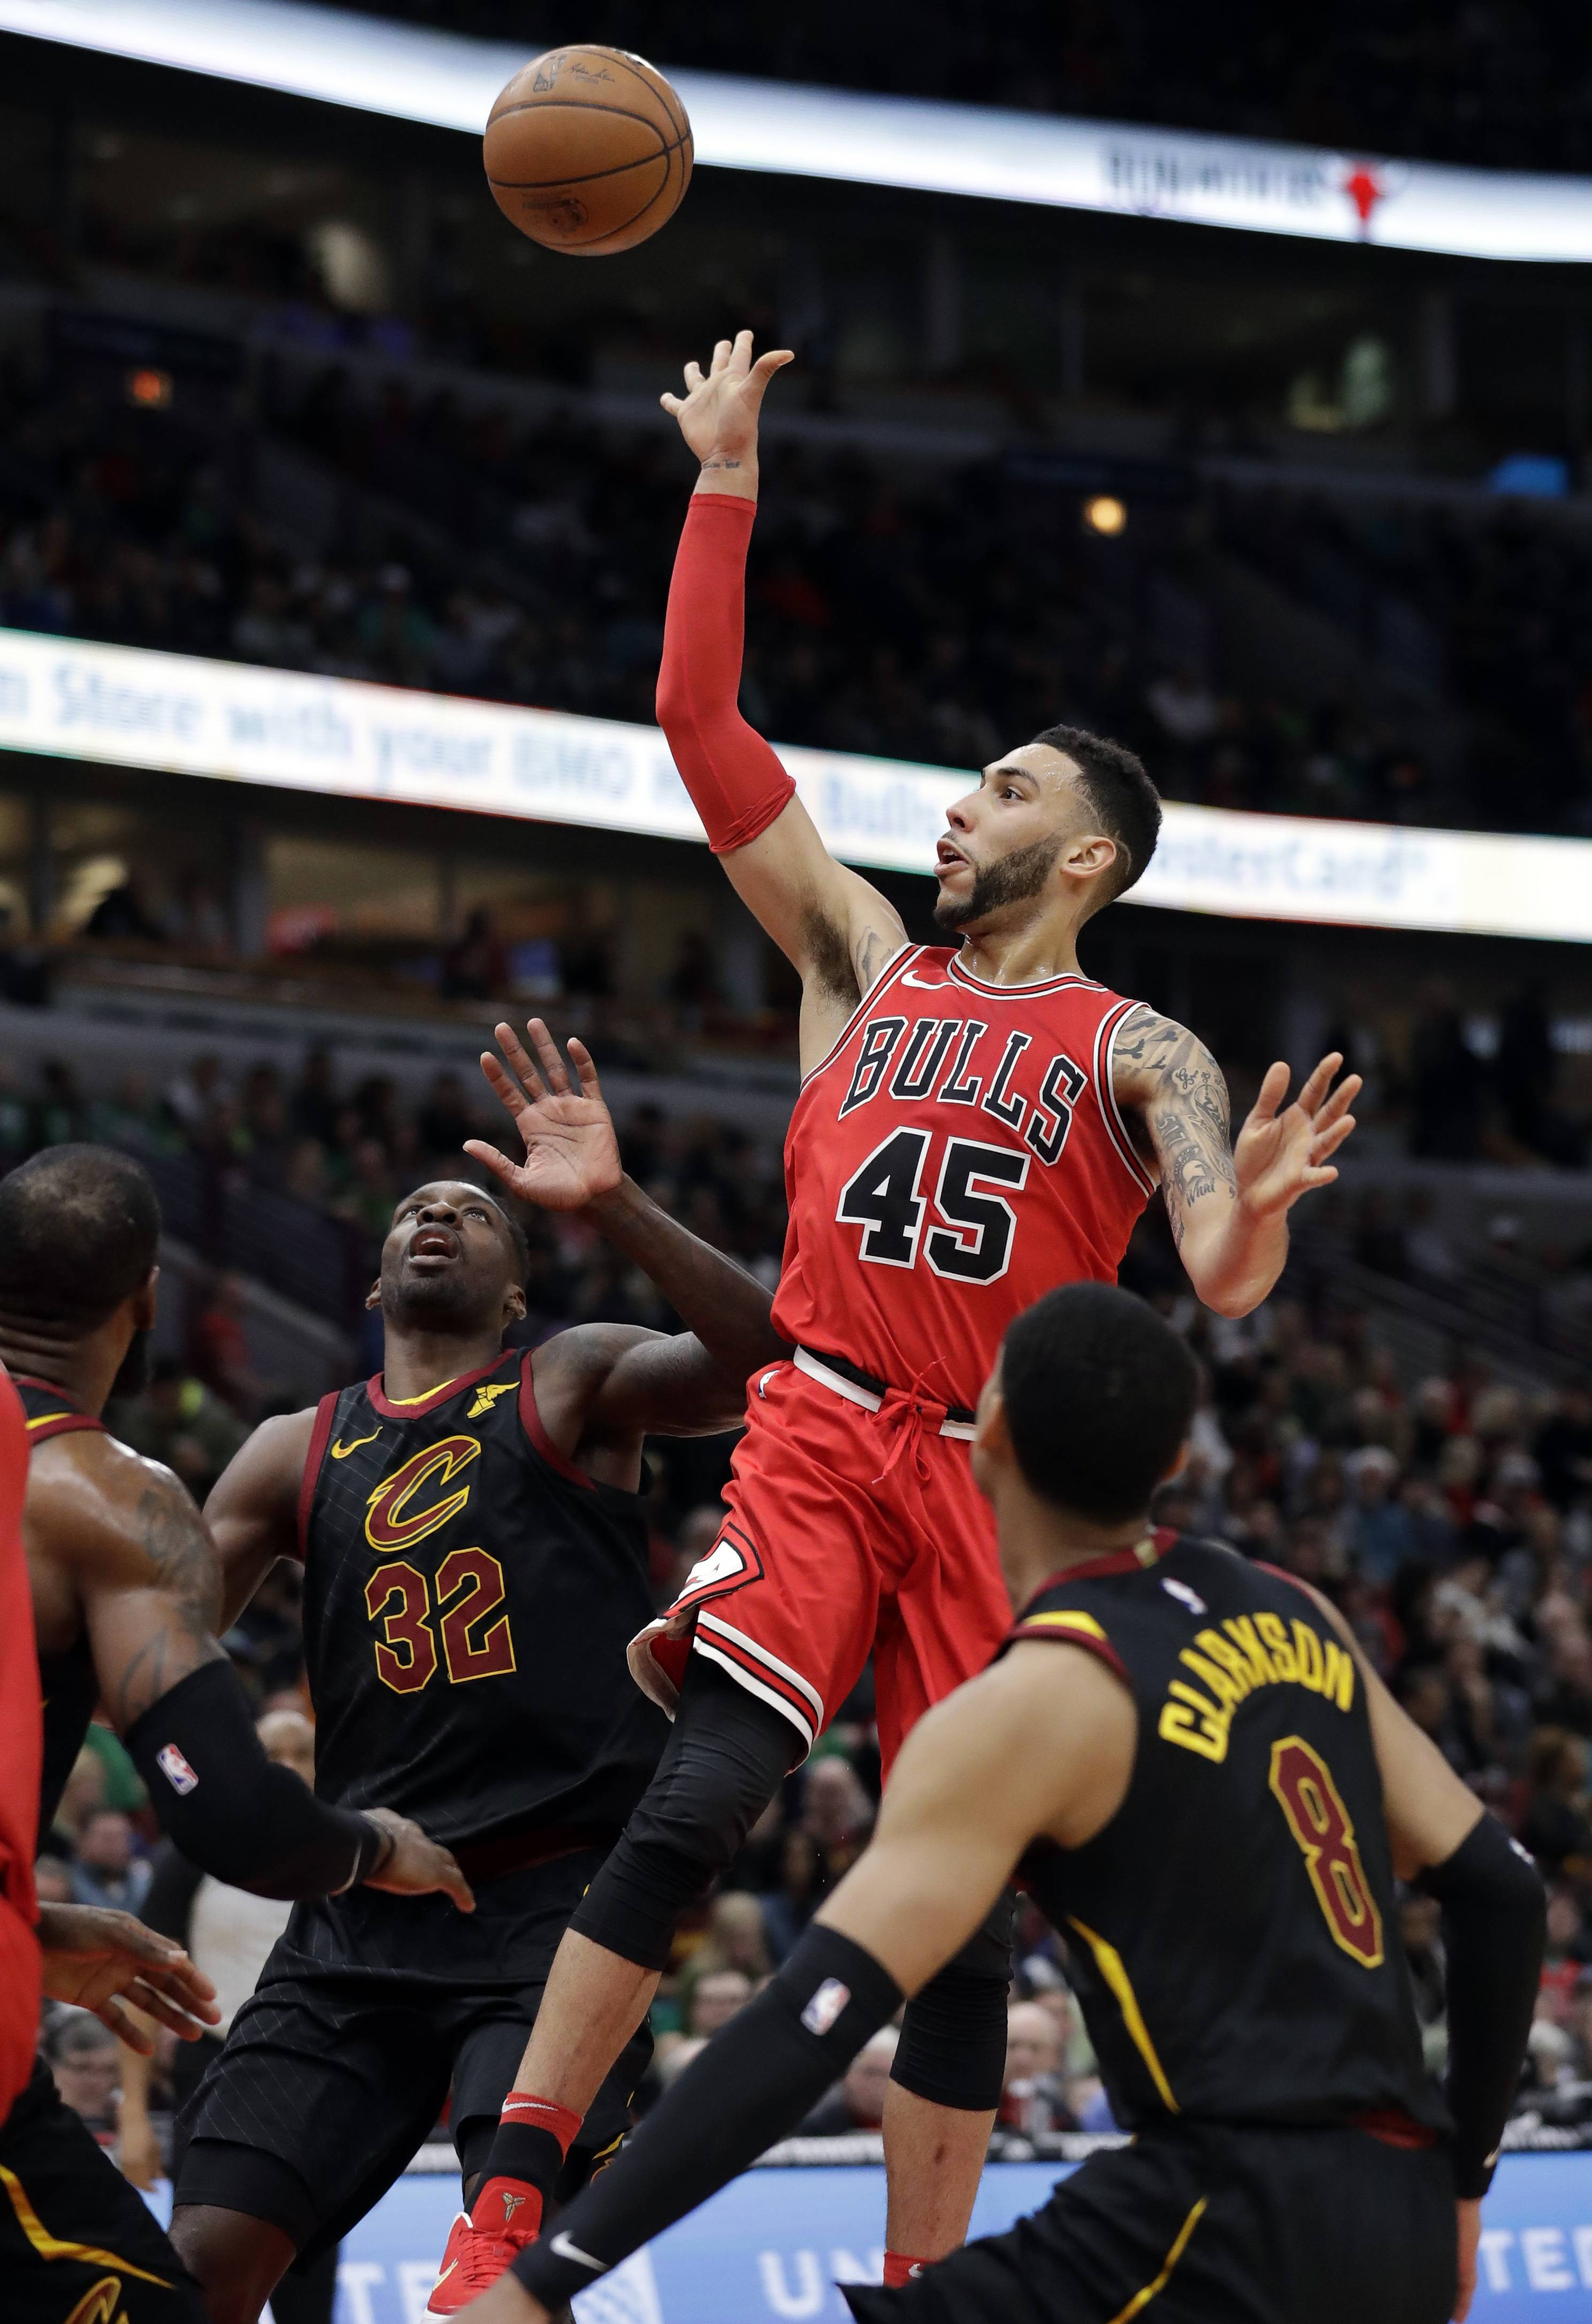 Chicago Bulls guard Denzel Valentine (45) shoots against the Cleveland Cavaliers during the second half of an NBA basketball game Saturday, March 17, 2018, in Chicago. The Cavaliers won114-109. (AP Photo/Nam Y. Huh)